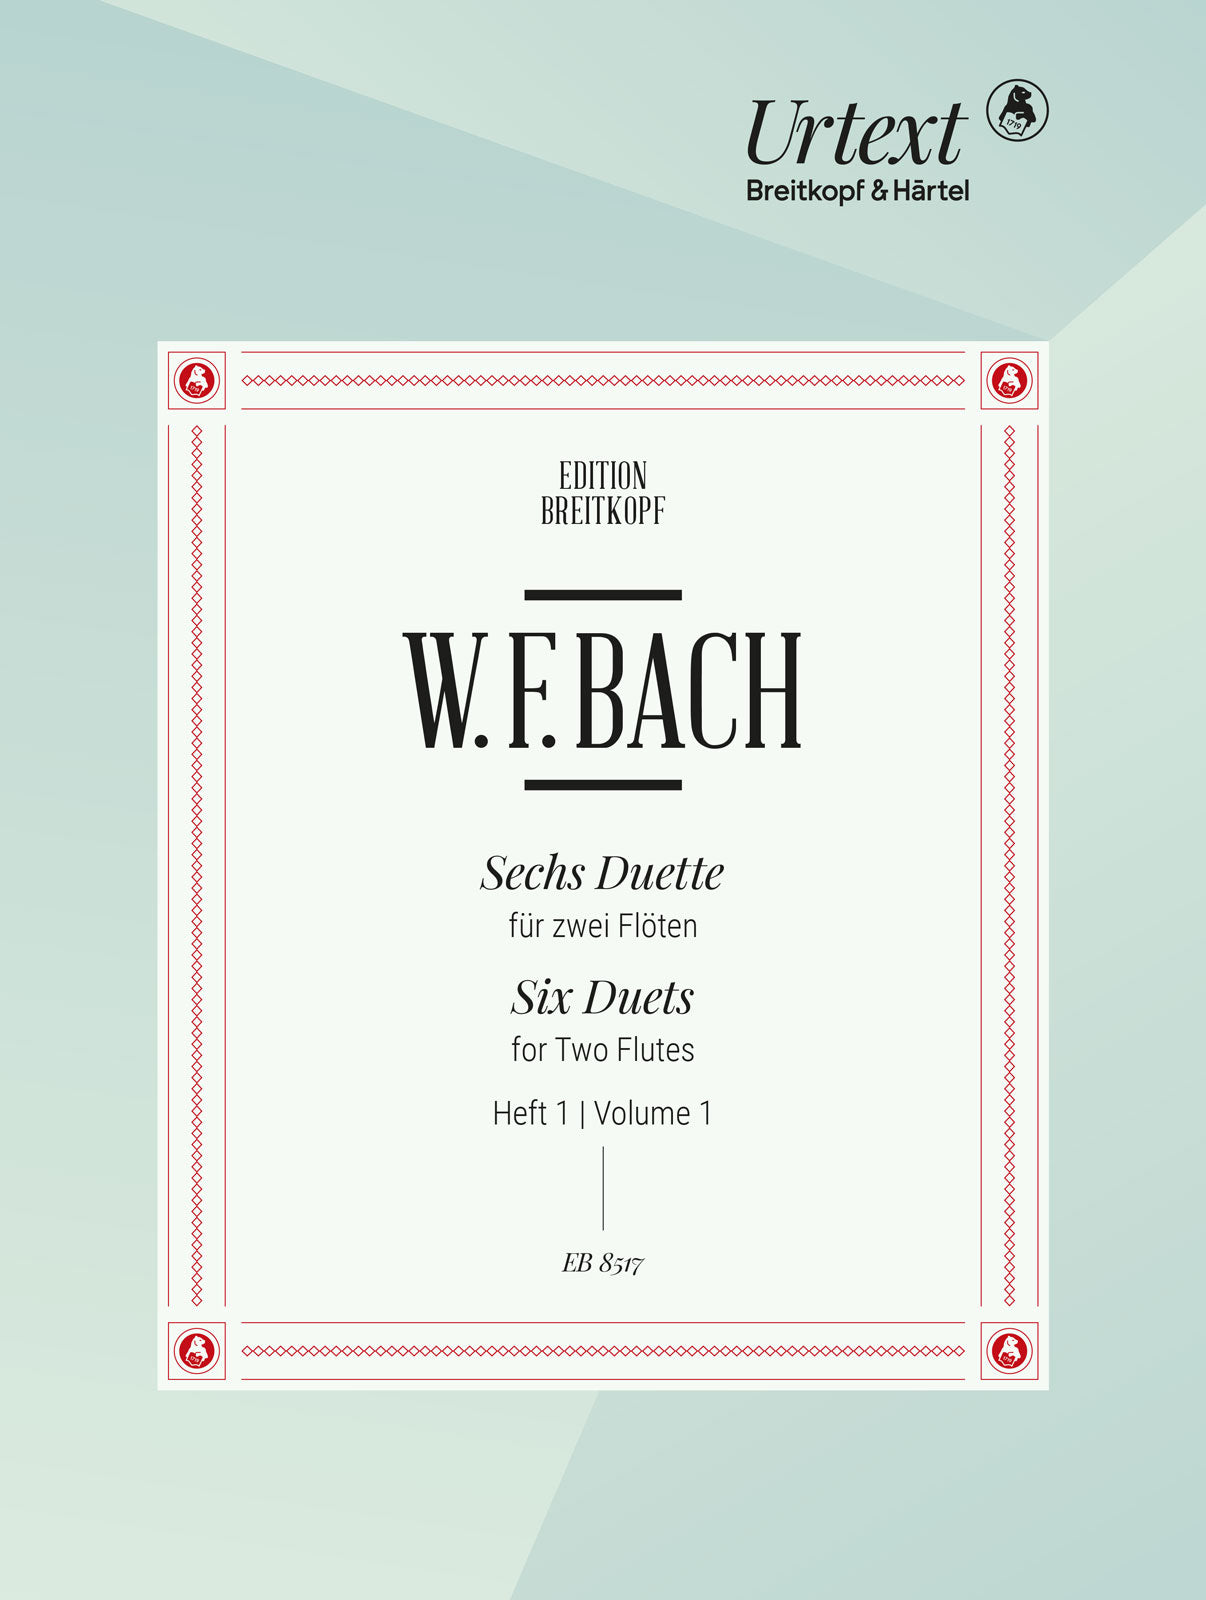 W. F. Bach: 6 Duets for Two Flutes - Volume 1 (Nos. 1-3)